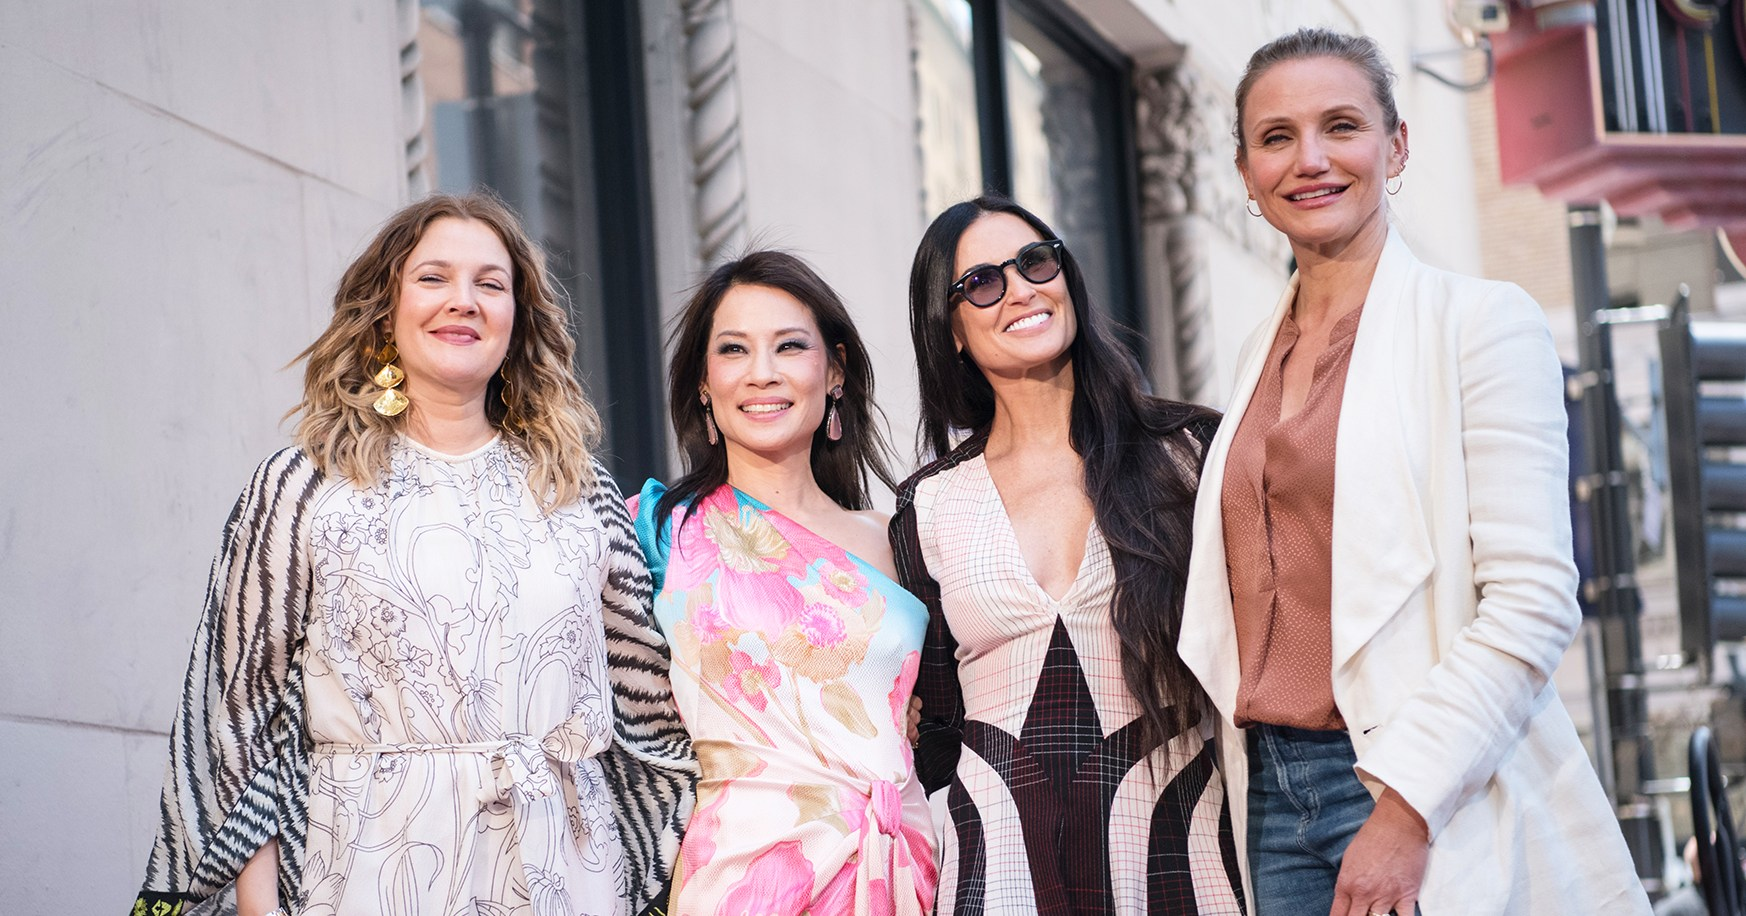 Cameron Diaz, Drew Barrymore and Demi Moore Support 'Charlie's Angels' Costar Lucy Liu at Walk of Fame Ceremony